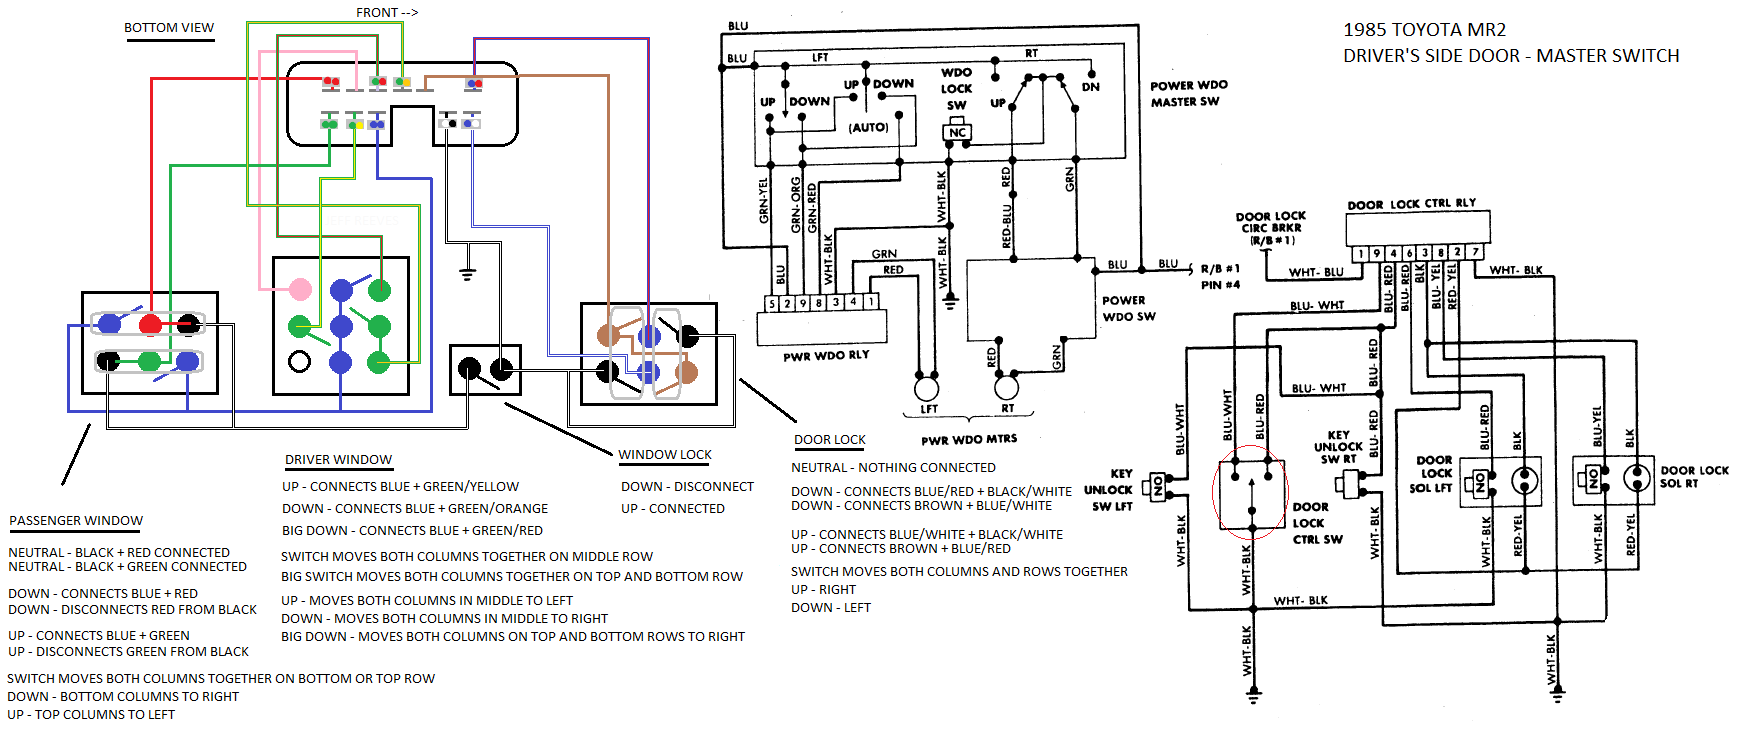 Fc 4167 Wiring Diagram Together With Power Window Wiring Diagram On Electric Download Diagram